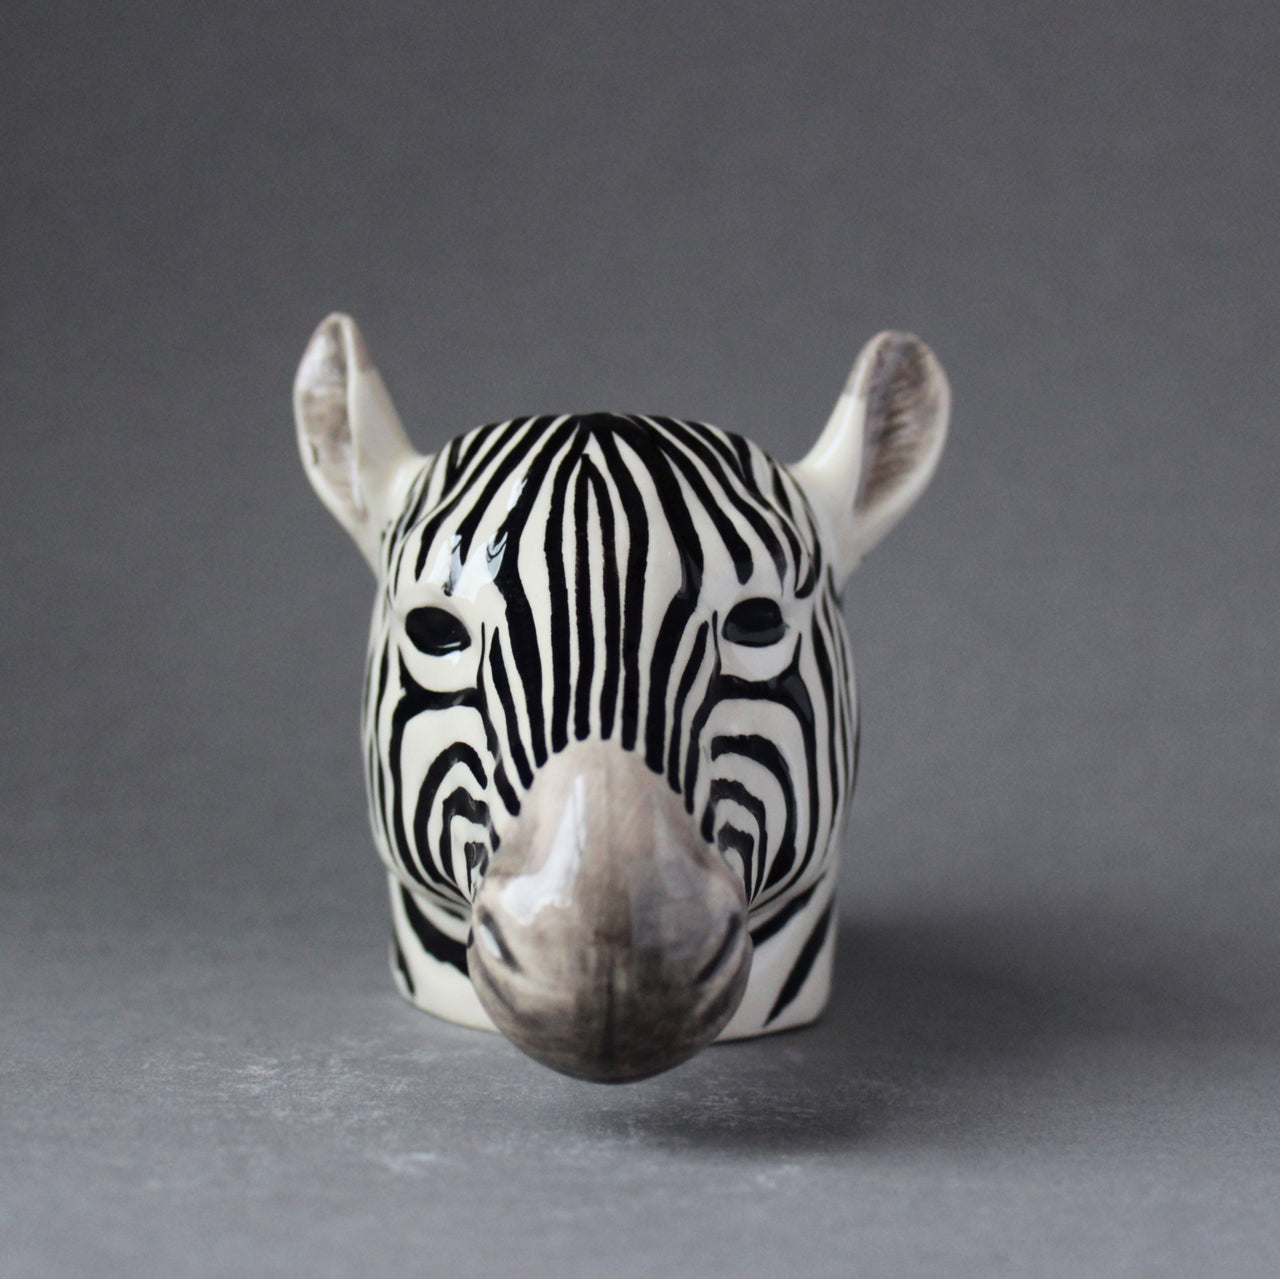 Quail 'Zebra' Ceramic Animal Egg Cup